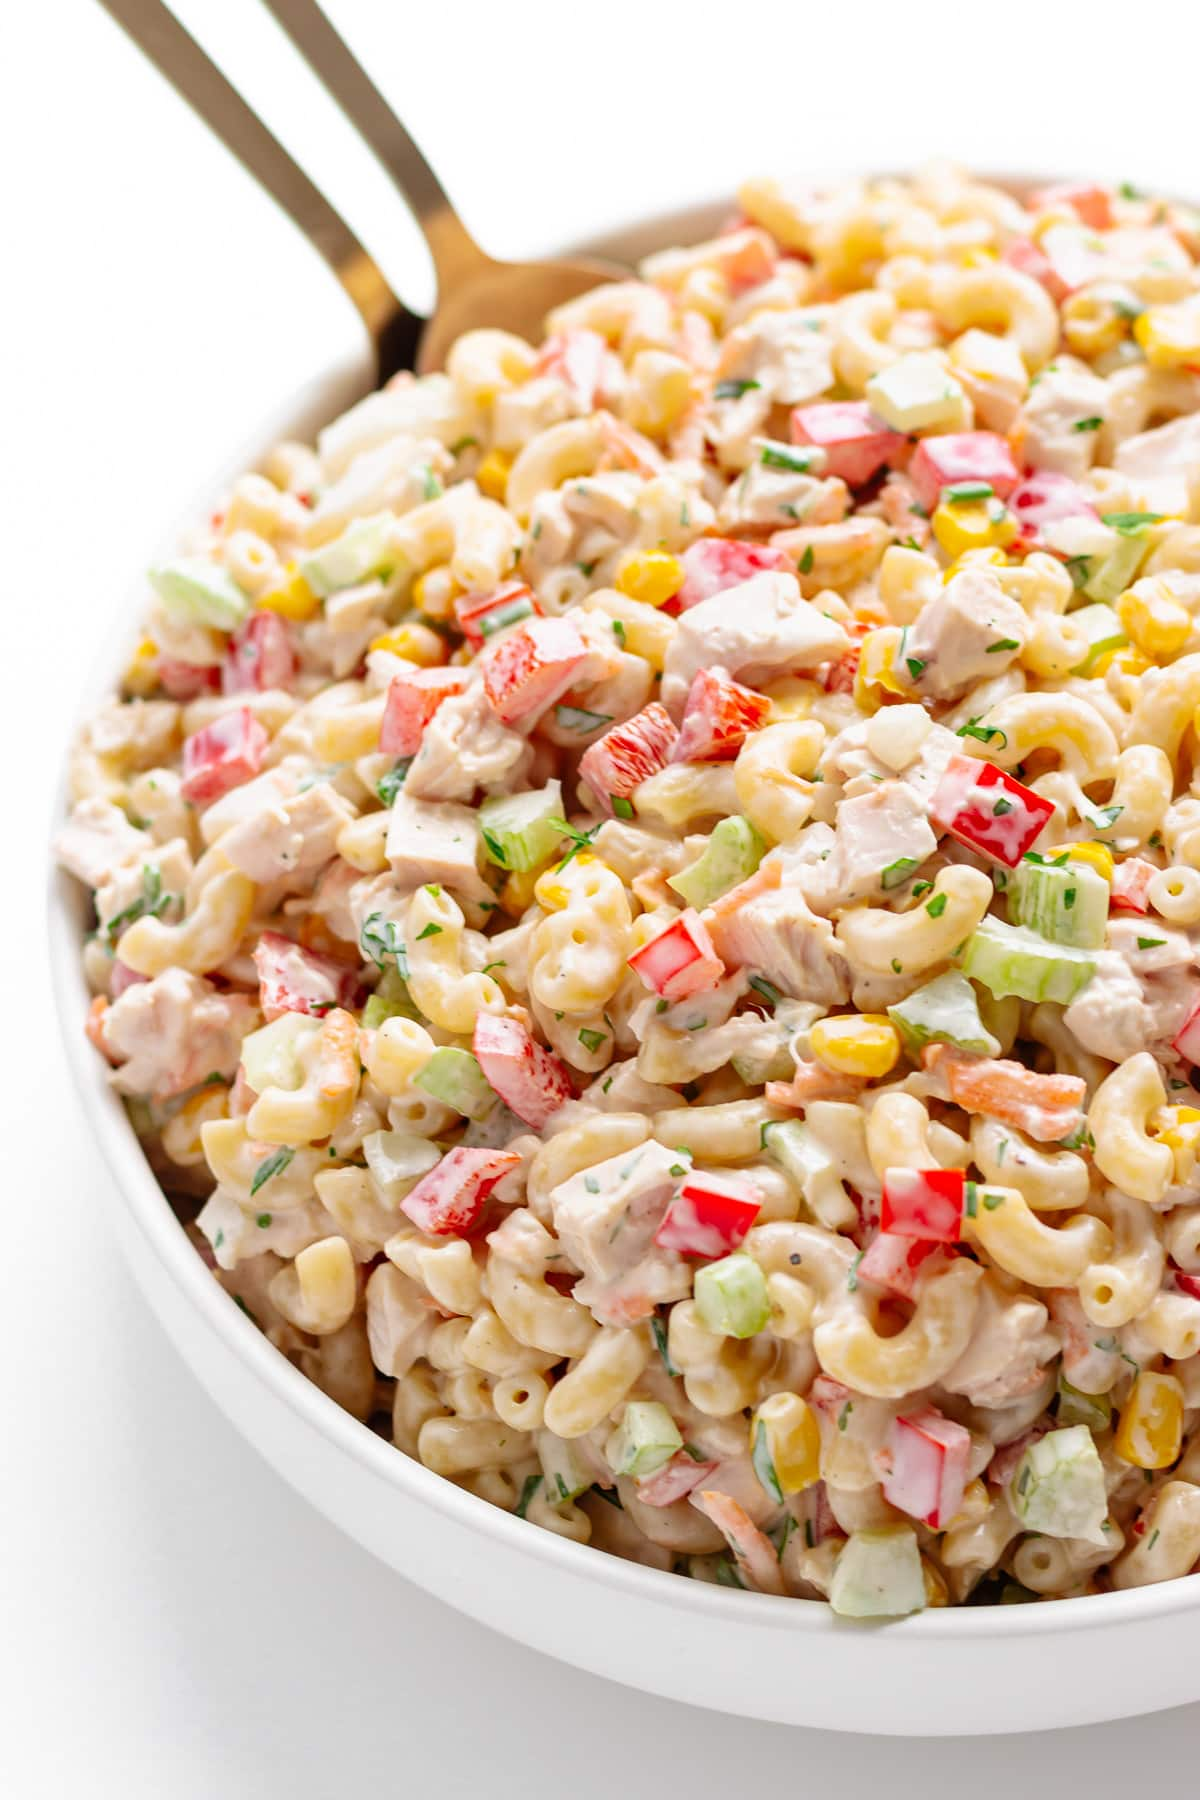 Chicken macaroni salad in a large white serving bowl with gold servers sticking out.